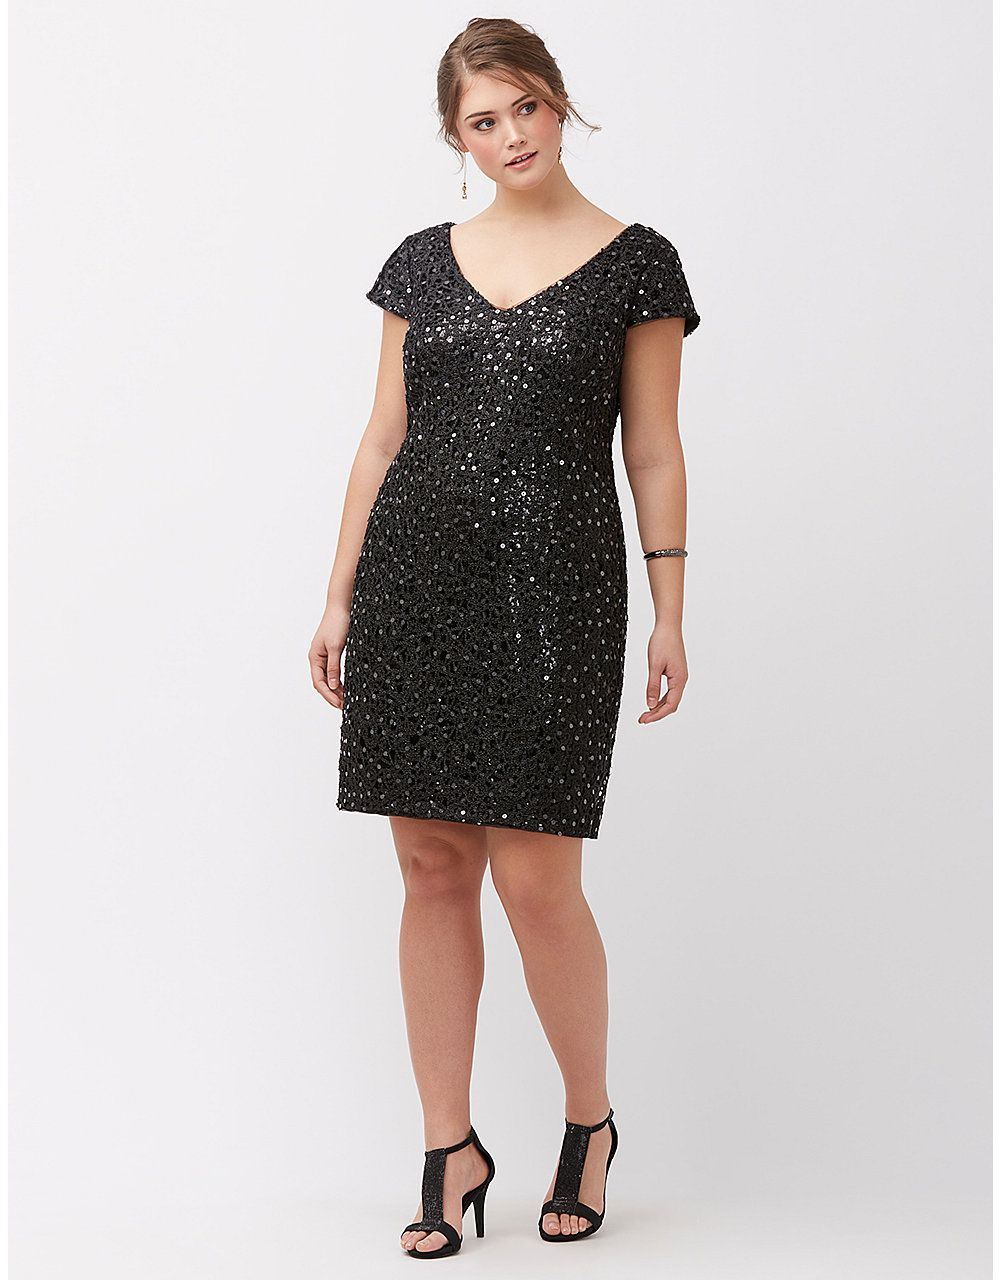 09acb84977e Plus Size Dresses   Skirts for Women Size. Sequin lace shift dress by Adrianna  Papell